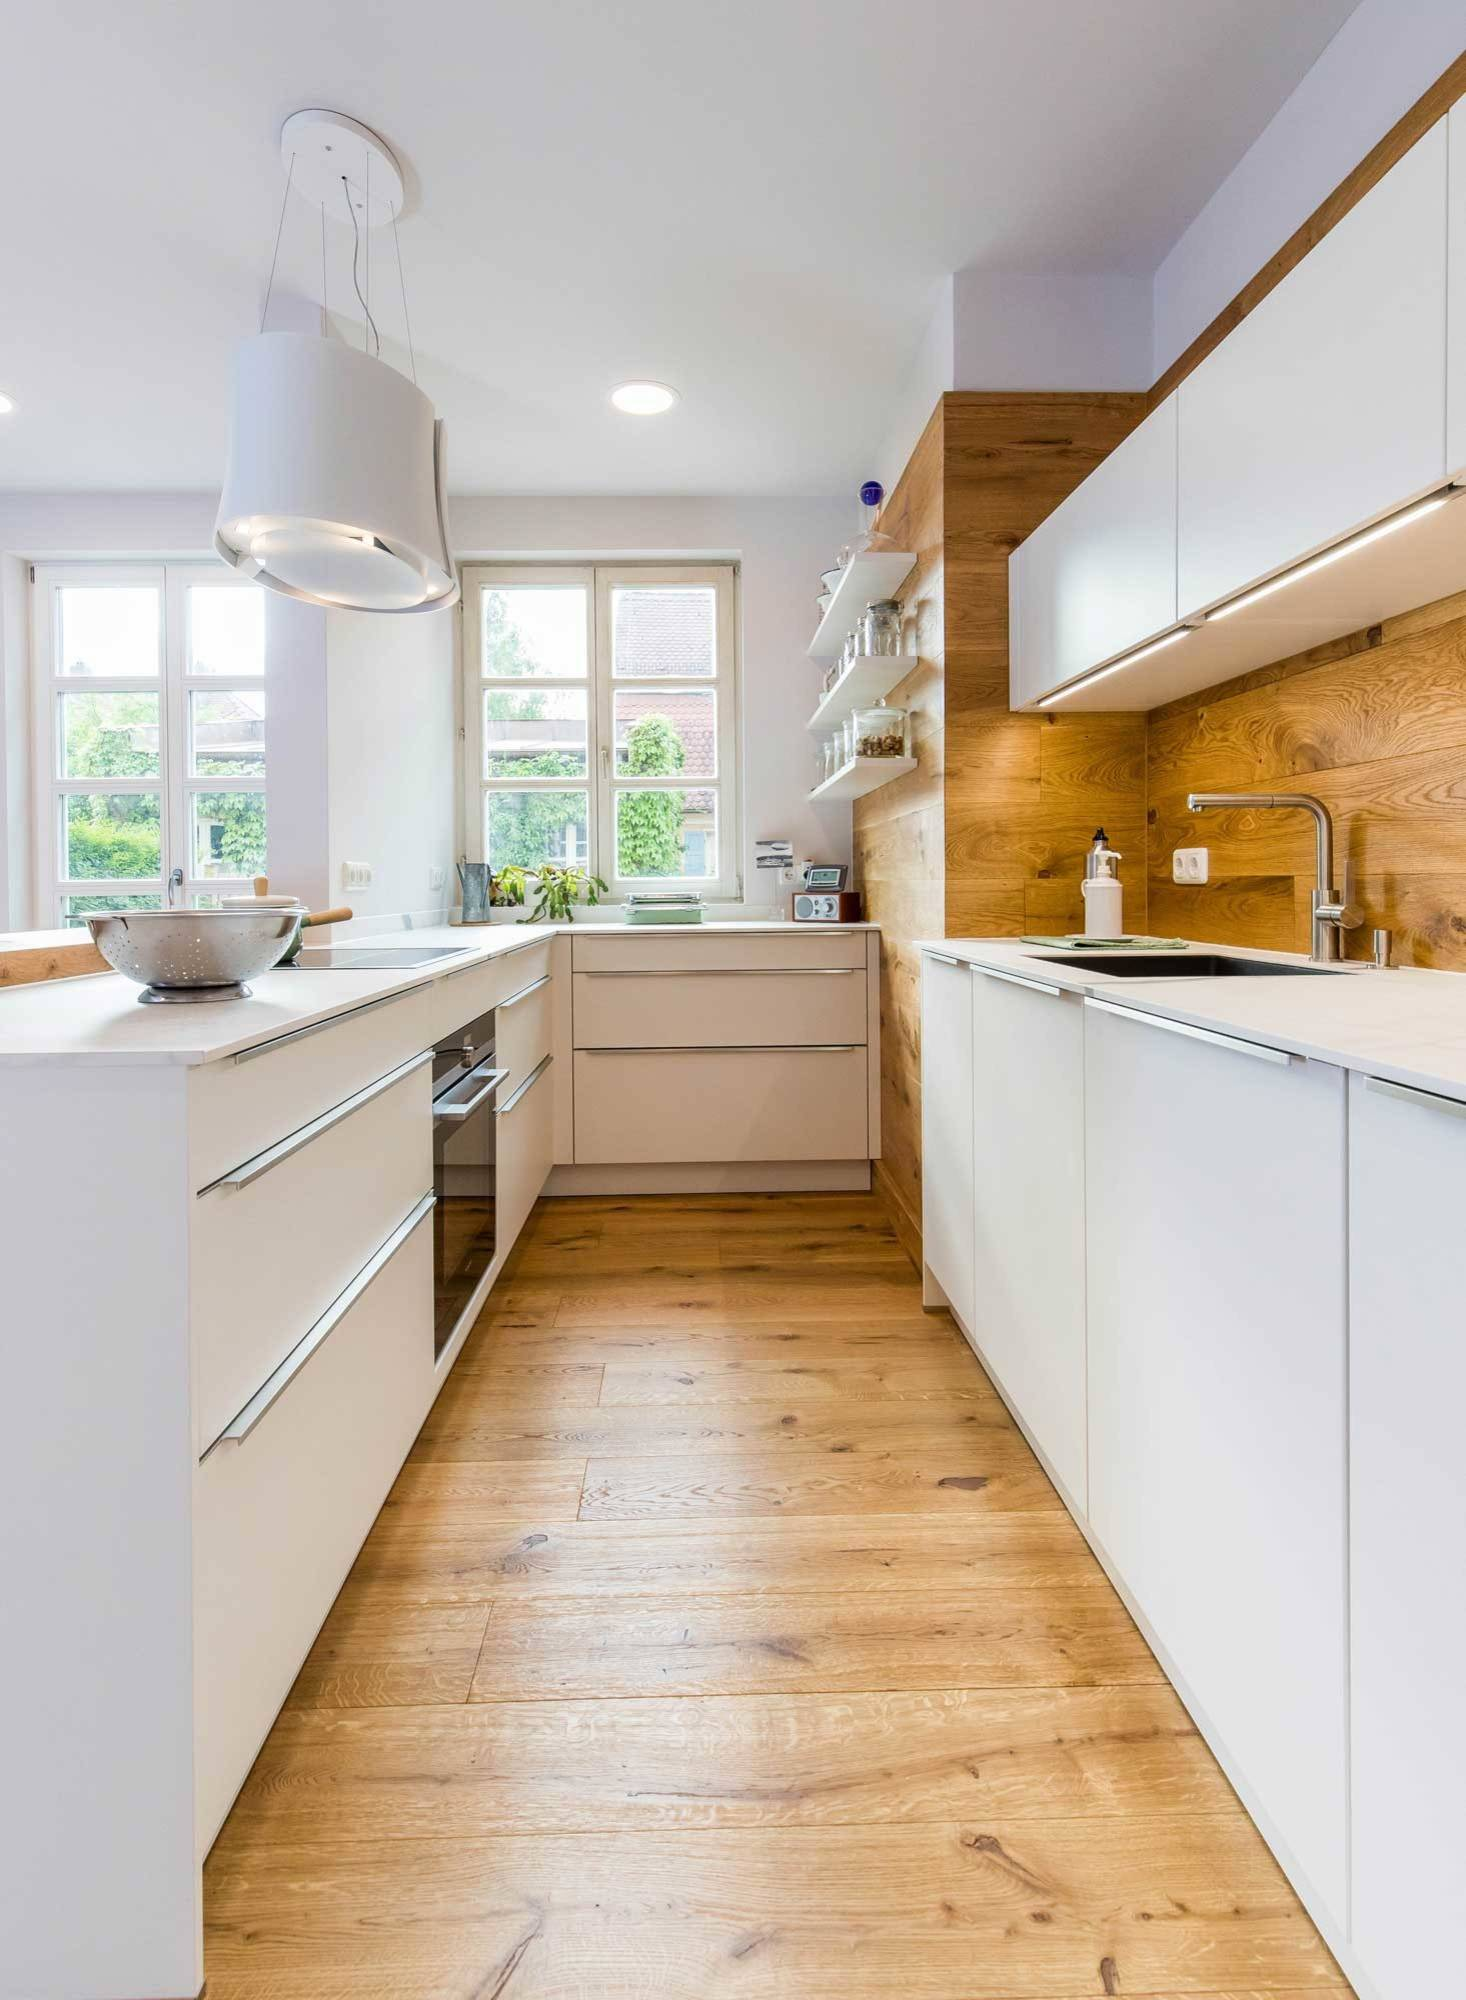 75 Beautiful Kitchen With Wood Backsplash Pictures Ideas January 2021 Houzz